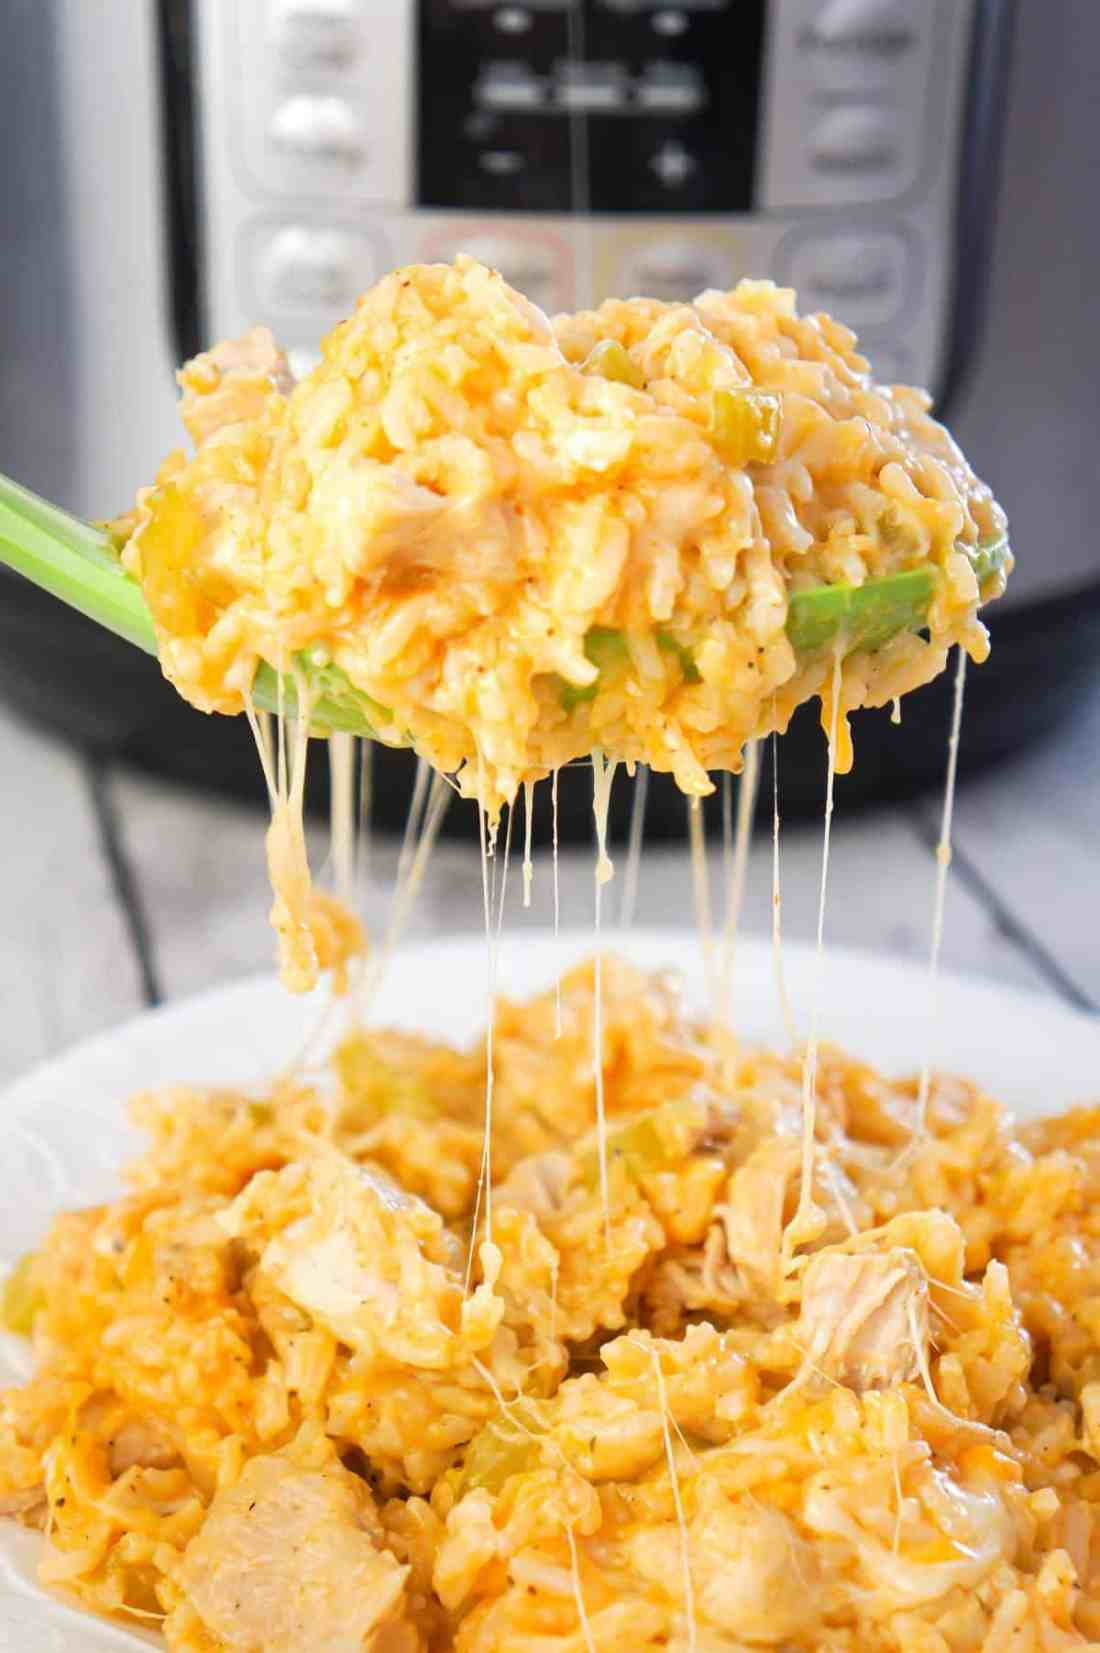 Instant Pot Cheesy Buffalo Chicken and Rice is an easy pressure cooker dinner recipe loaded with chicken breast chunks, long grain white rice, diced celery, buffalo sauce and shredded cheese.